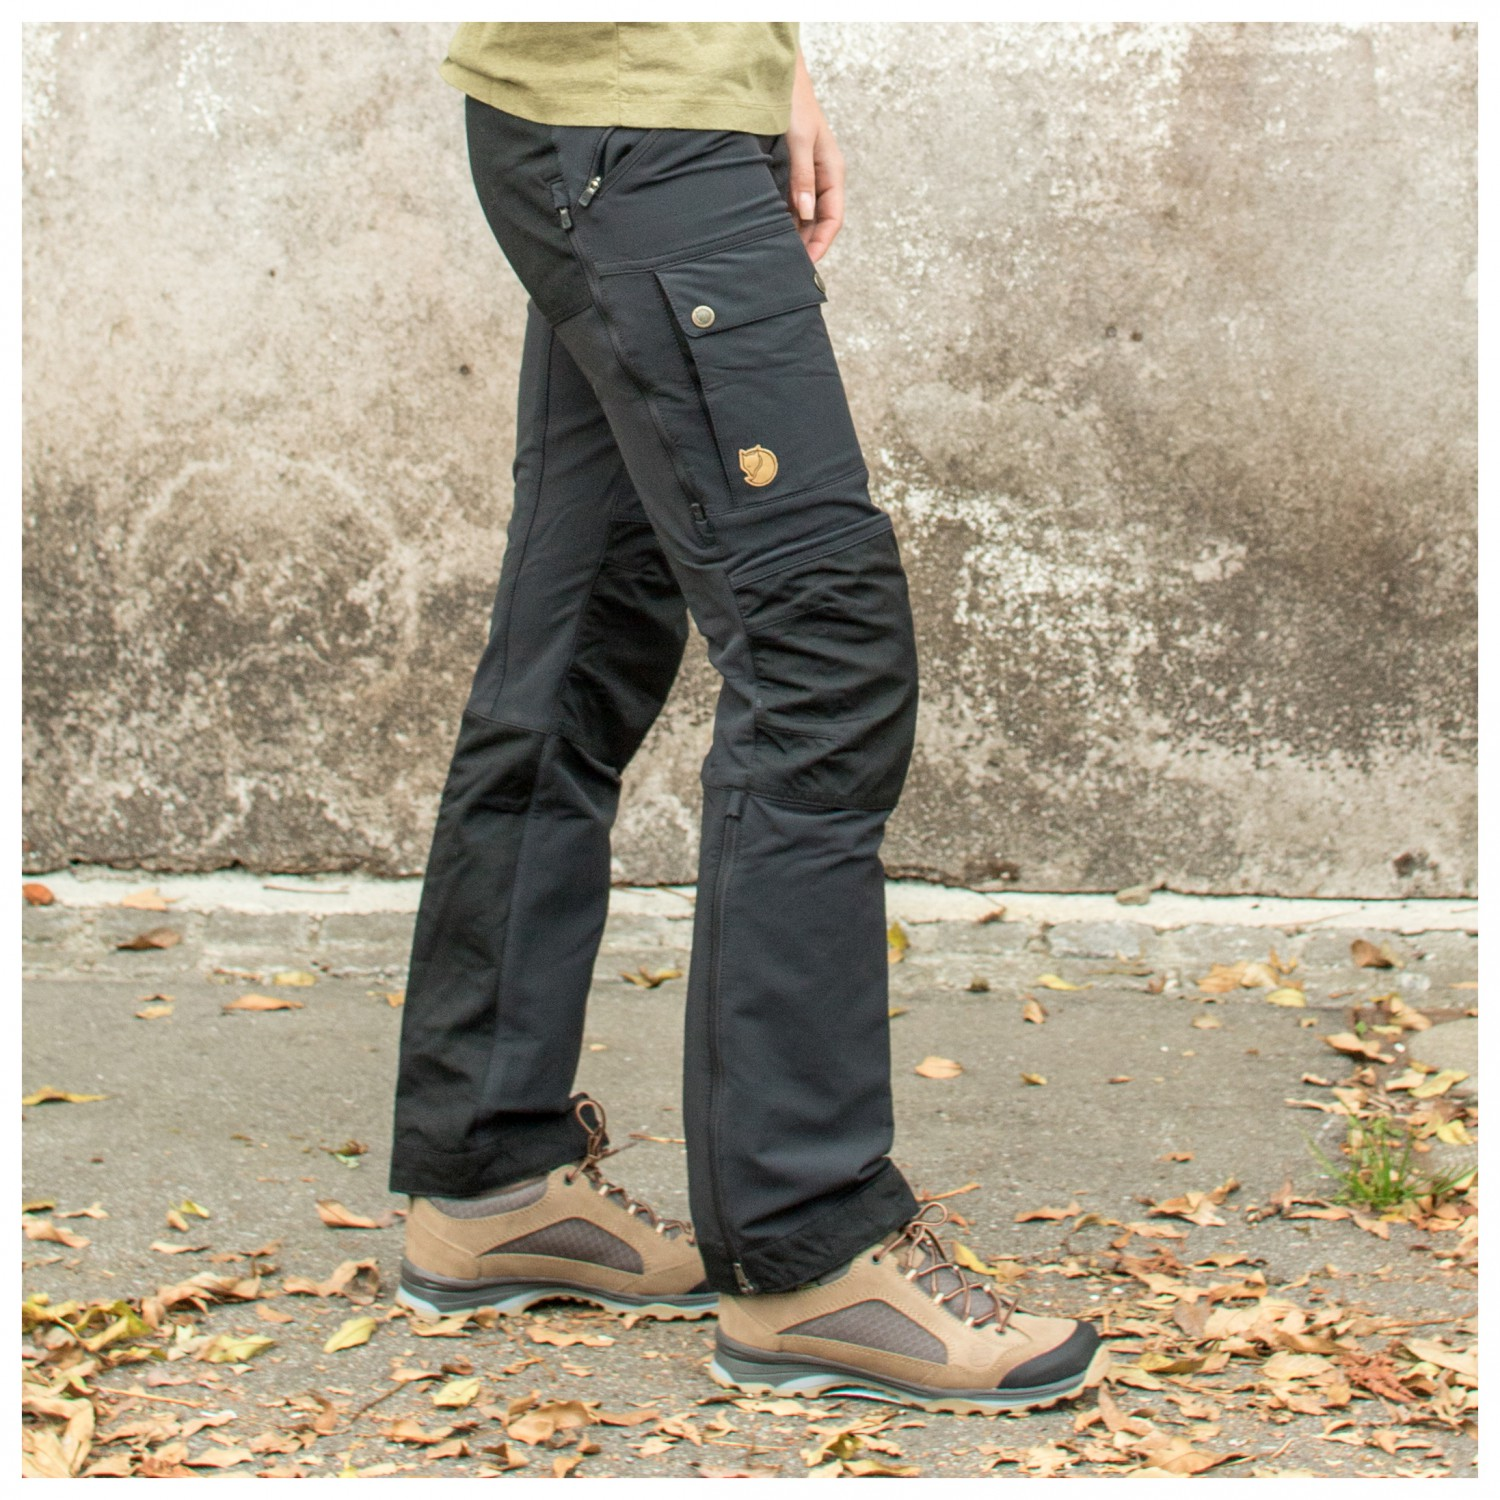 7c25afc6124 ... Fjällräven - Women's Keb Touring Trousers - Mountaineering trousers ...